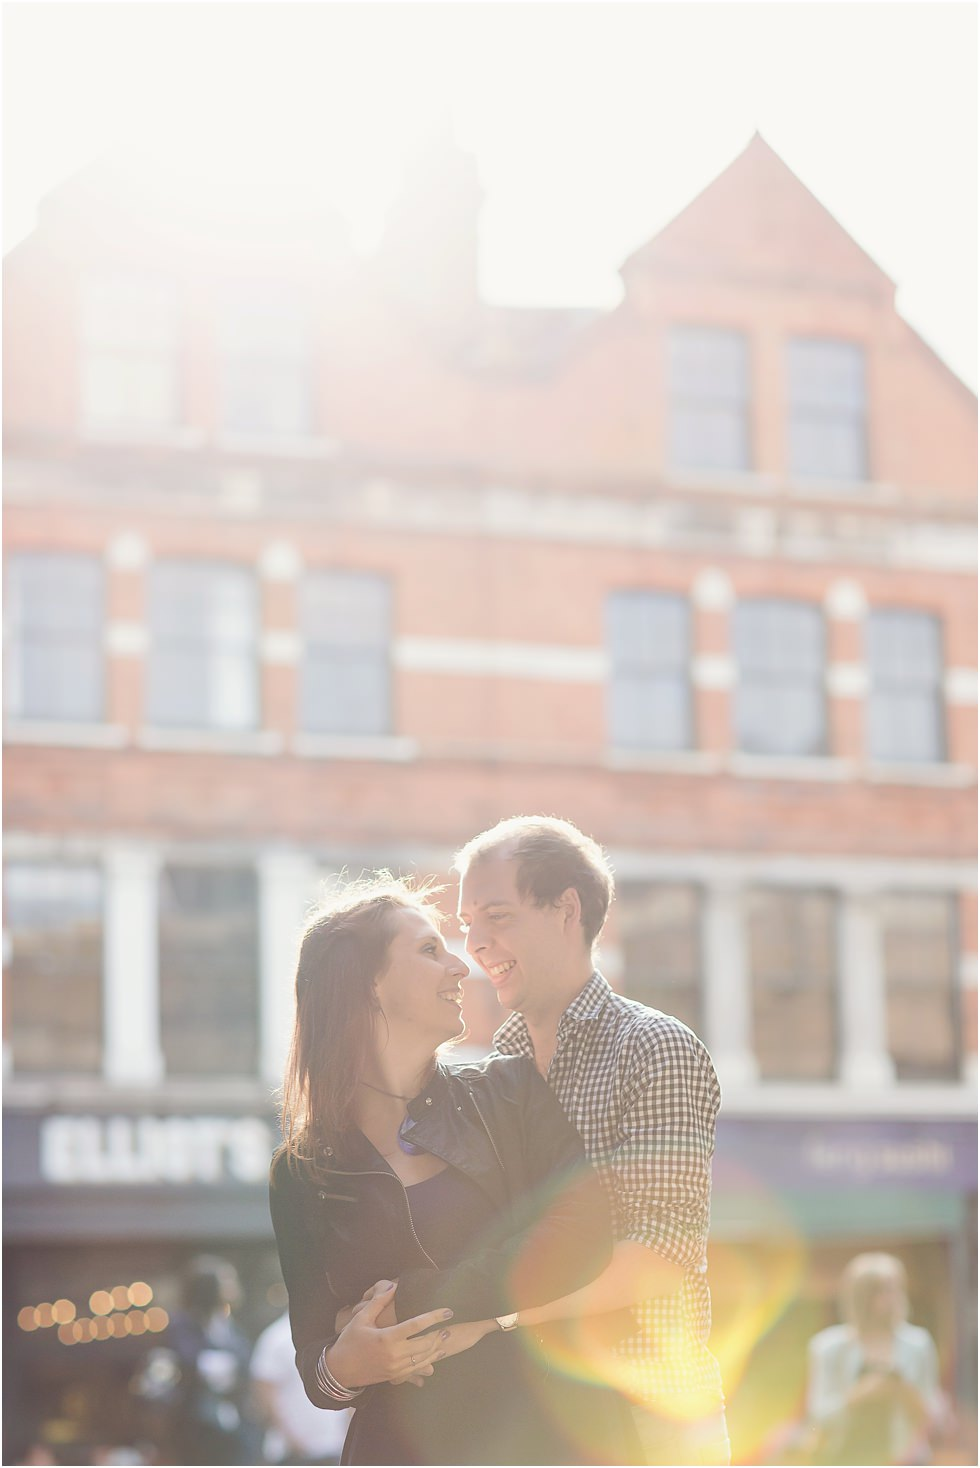 Cristina Rossi Photography | Borough Market Engagement Shoot_1053